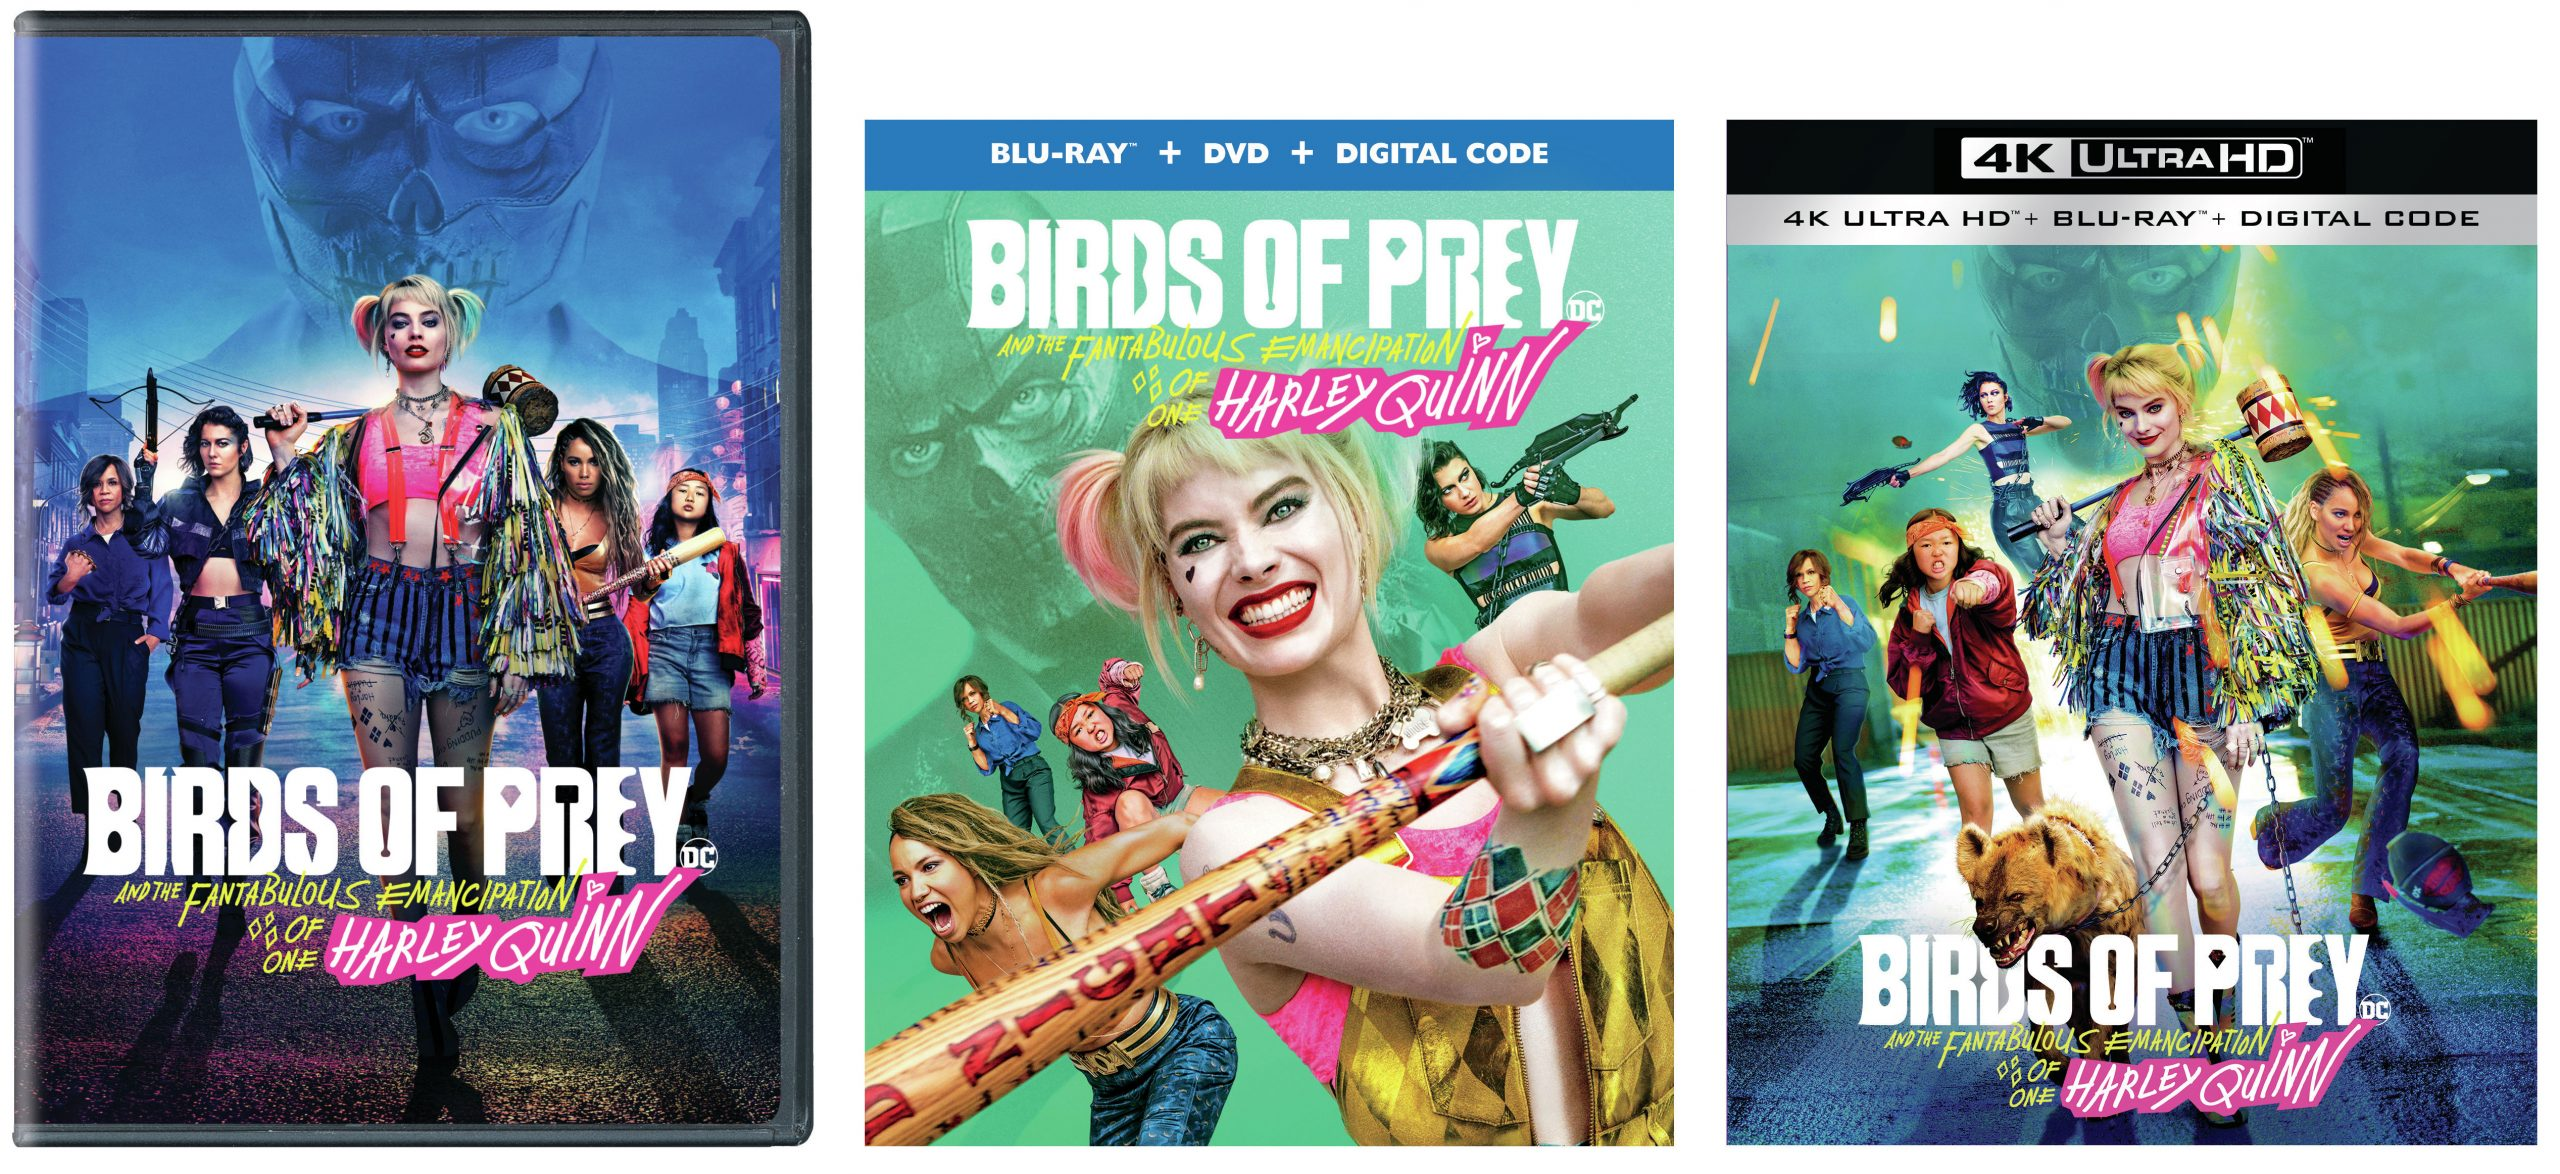 Birds Of Prey Covers Media Play News